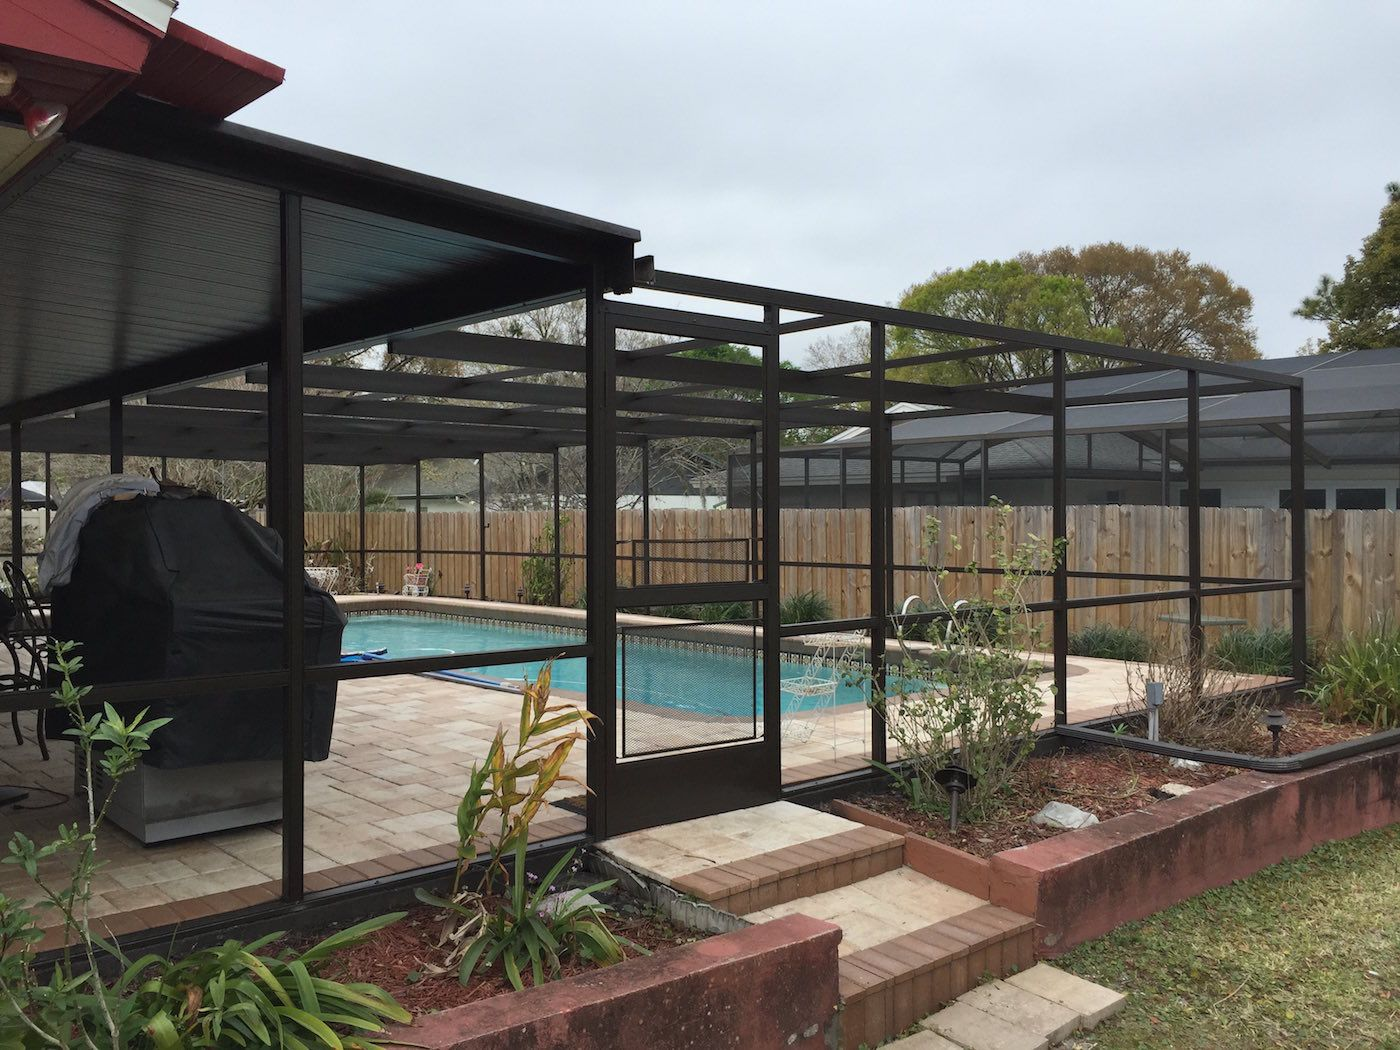 Swiming Pools Pool Enclosure With Patio Furniture Clearance Also And Deck Ideas Outdoor Floor